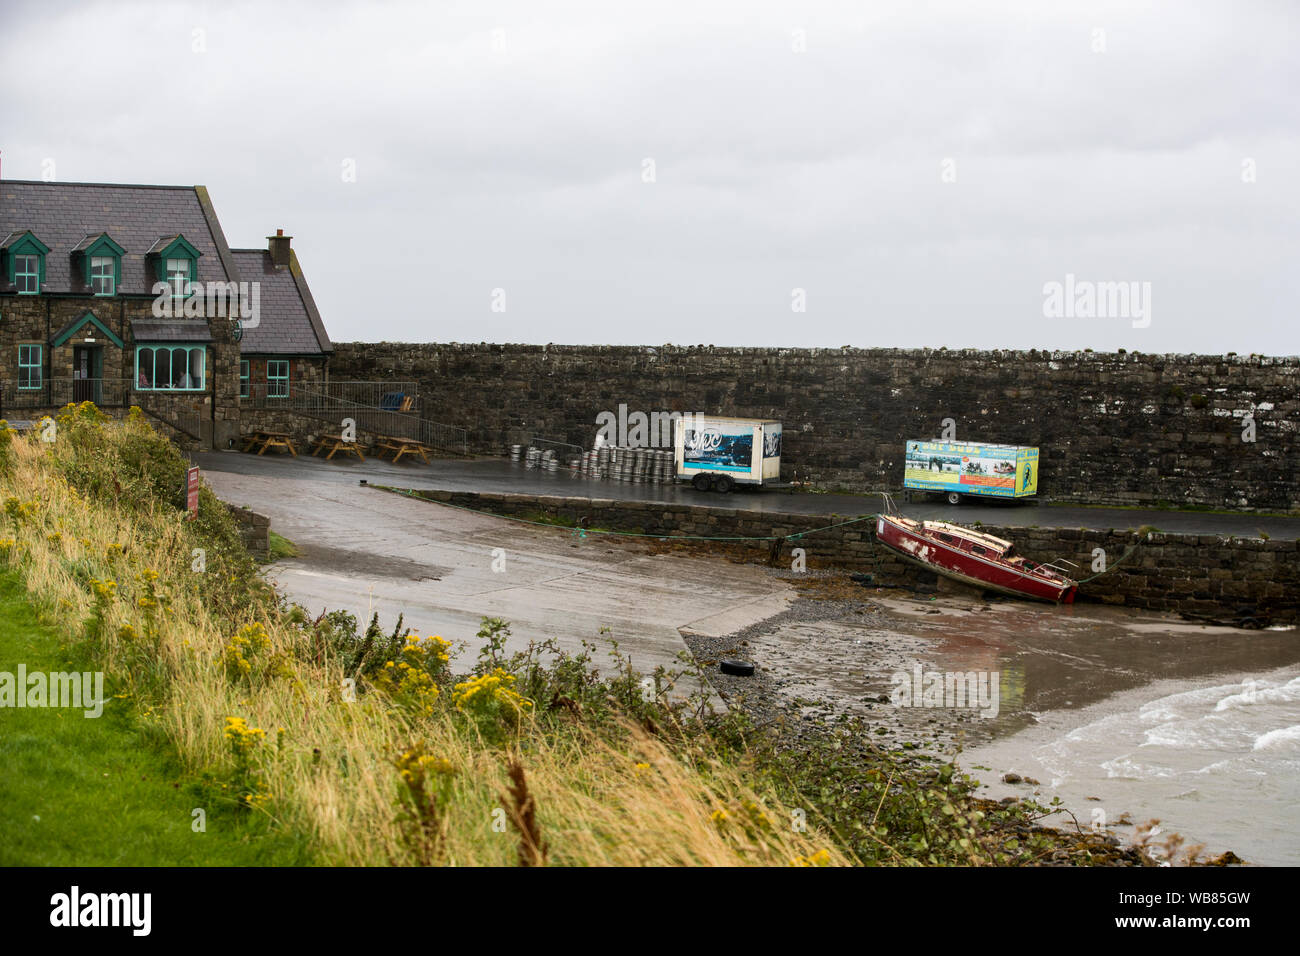 Mullaghmore Harbour In Co Sligo The Scene Where Forty Years Ago Bodies Were Carried To The Shore By Local Villagers After A Bomb Boat Planted On A Boat Carrying Lord Mountbatten Had